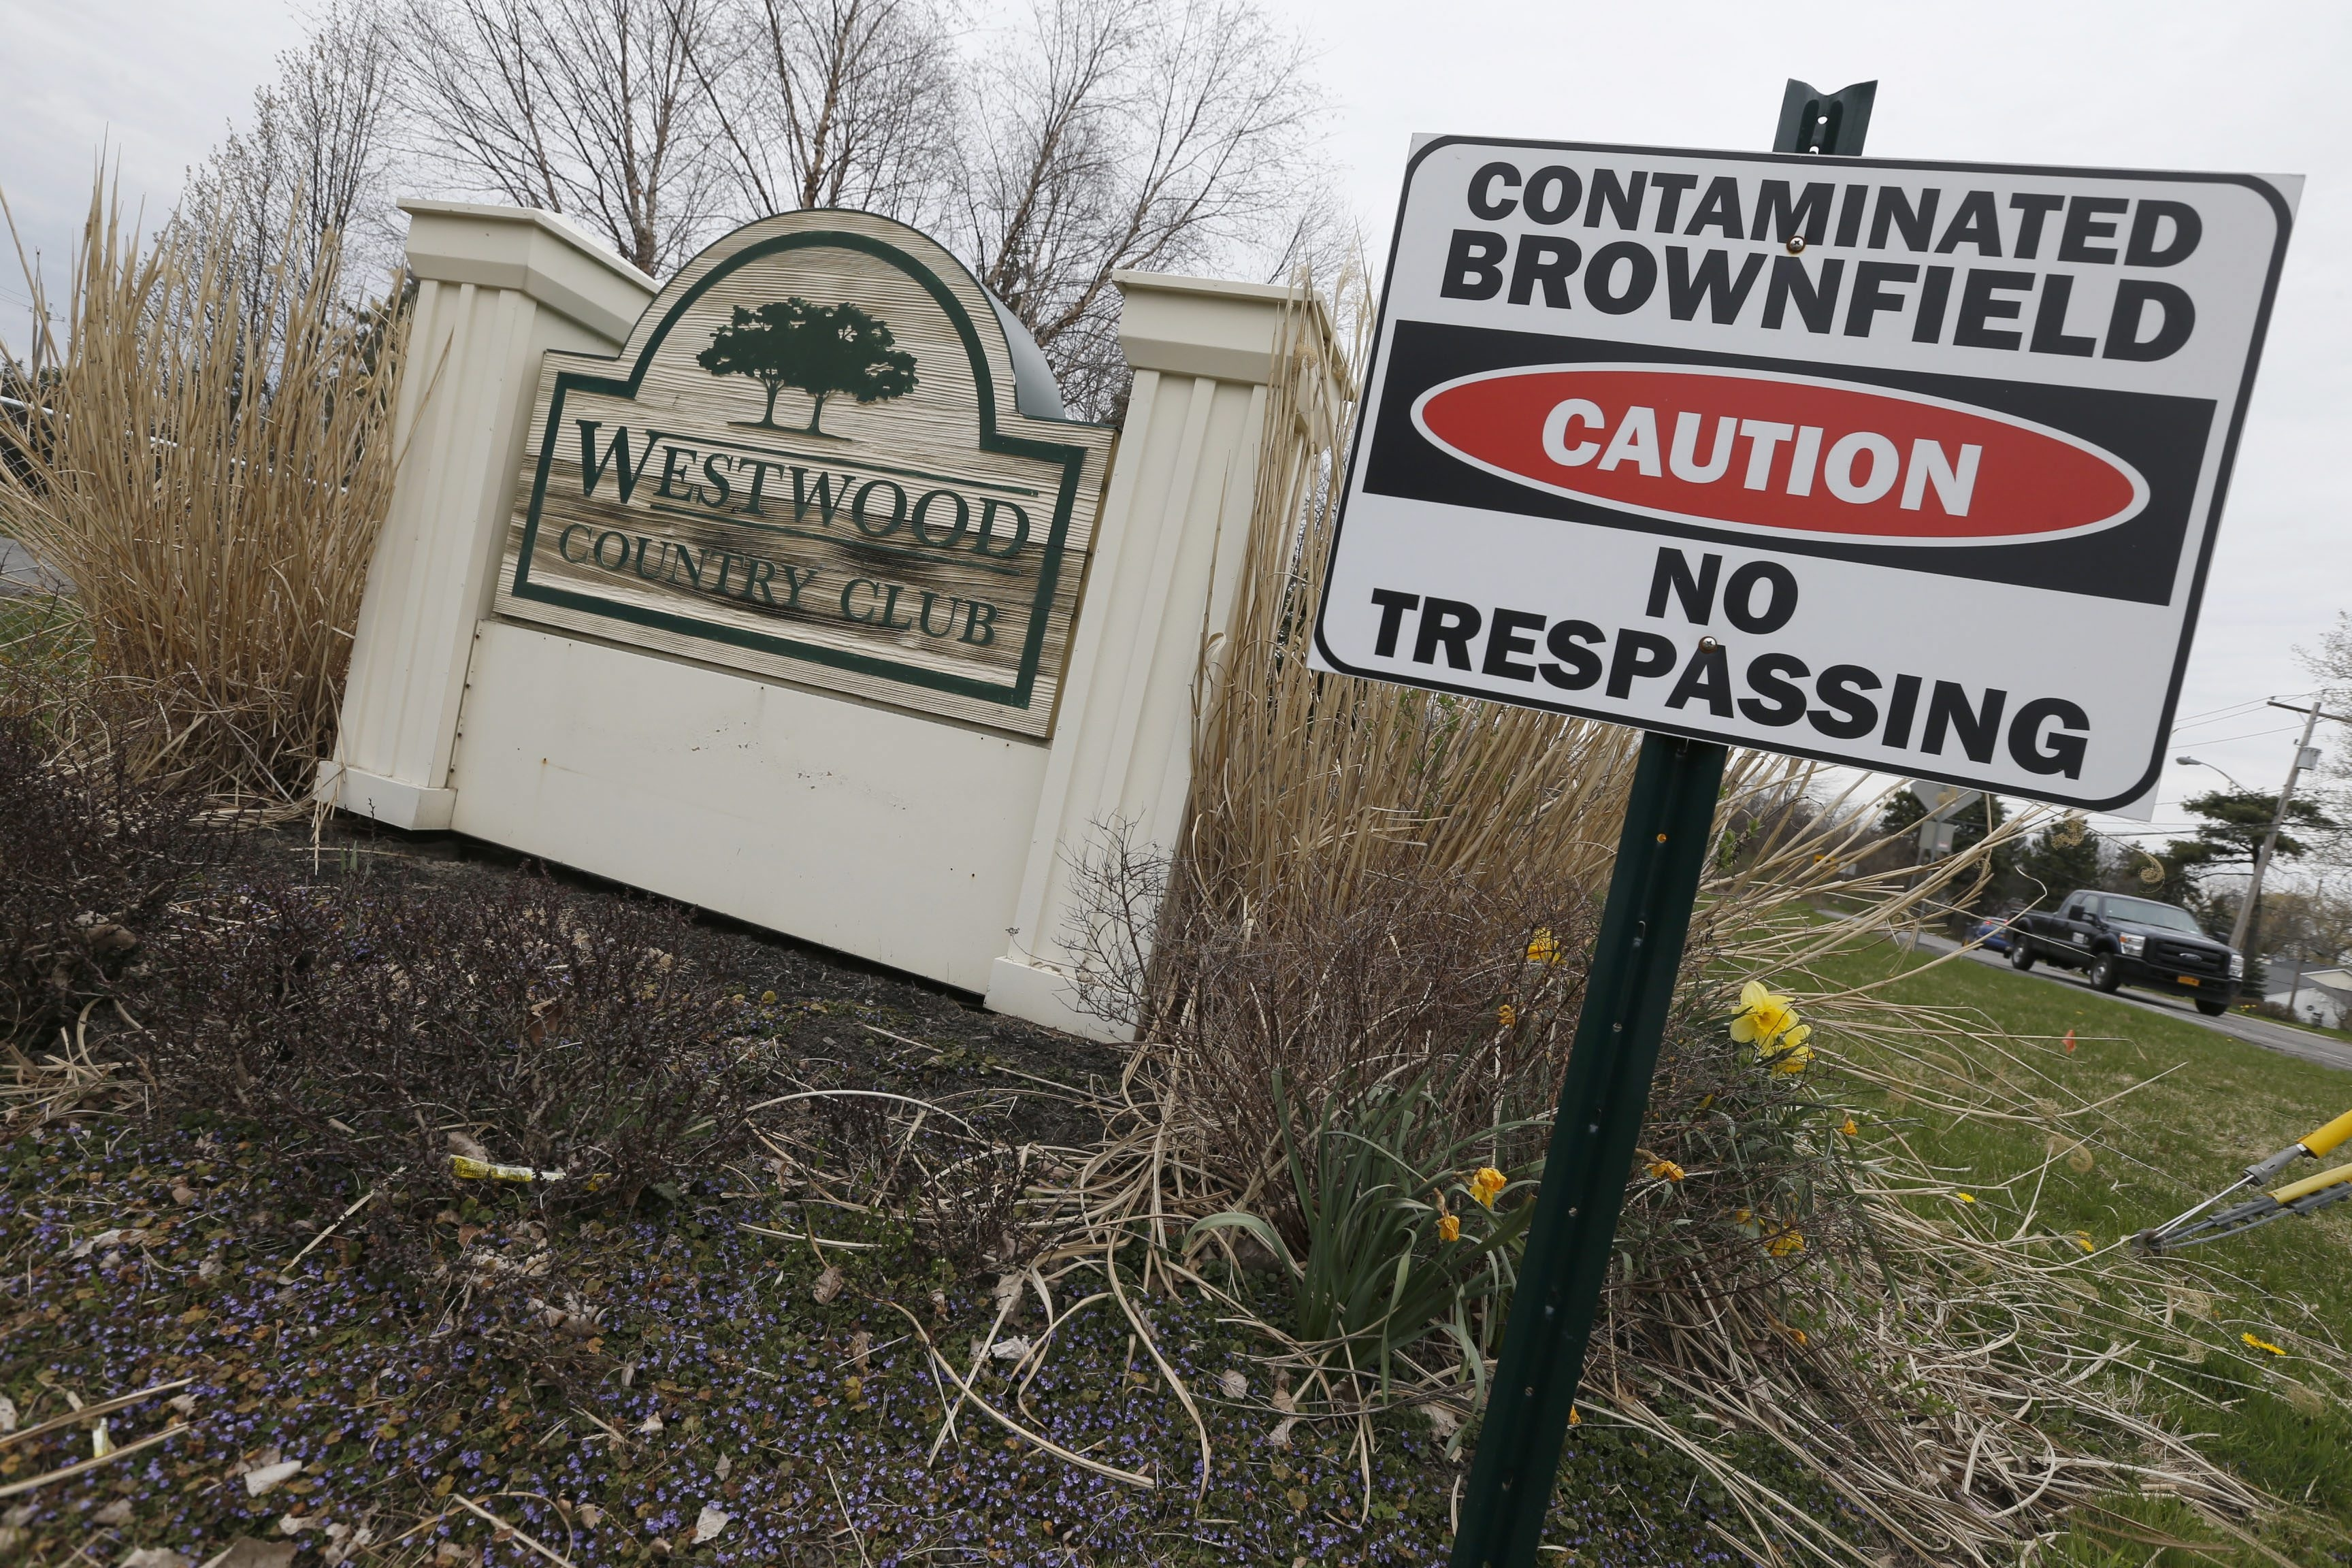 Signs outside the former Westwood Country Club sum up the land's past and present.